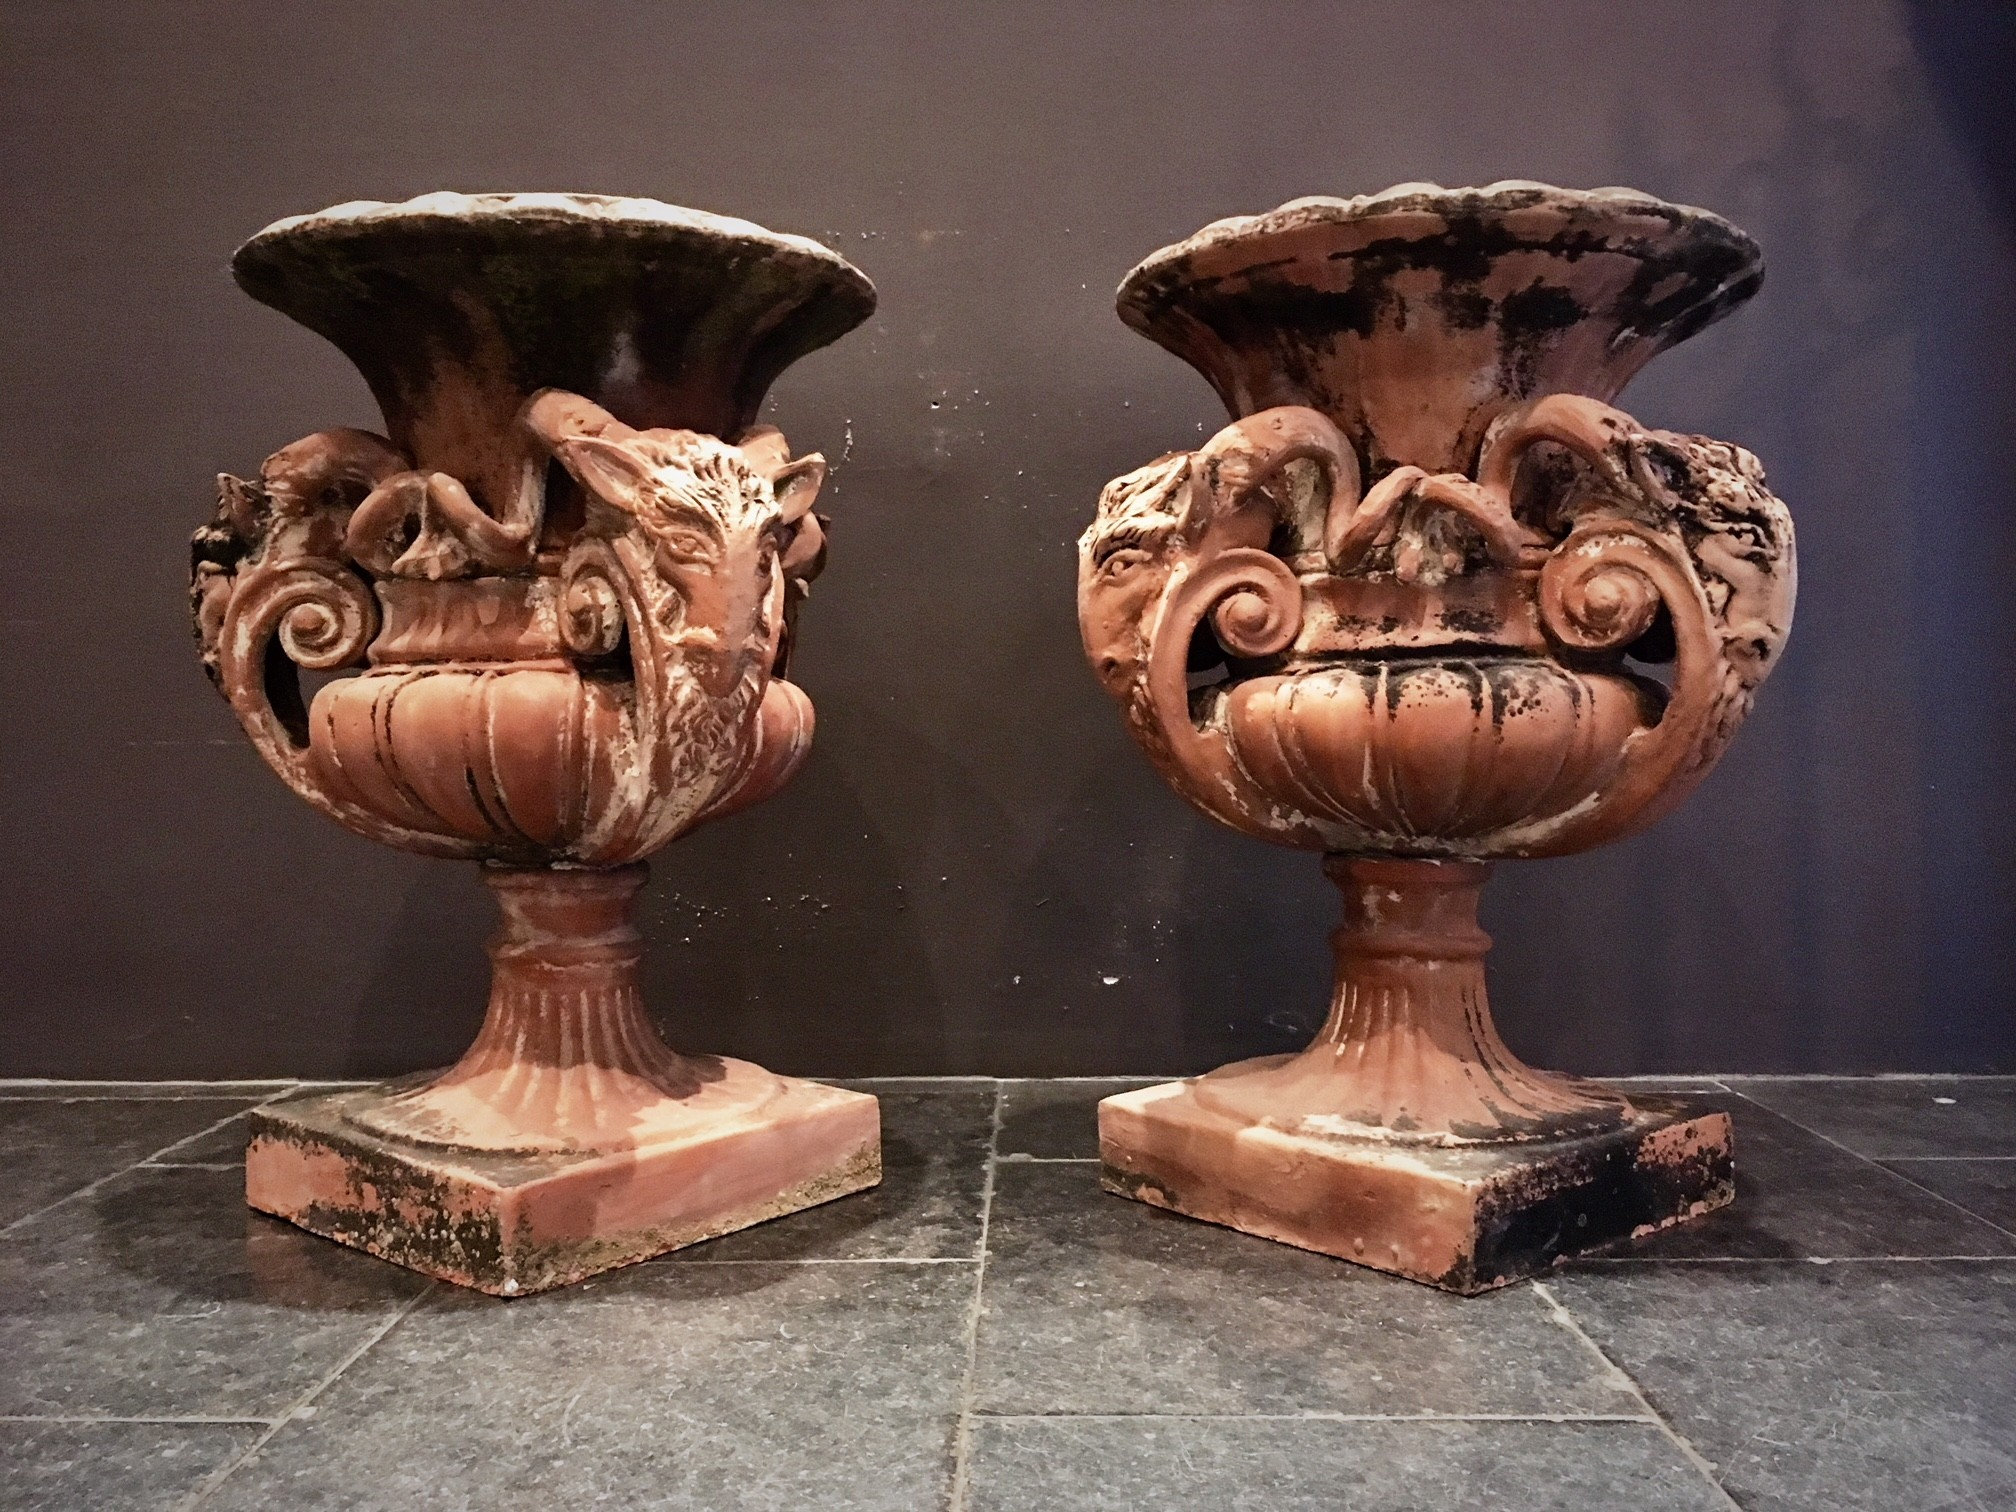 Antique terracotta garden vases